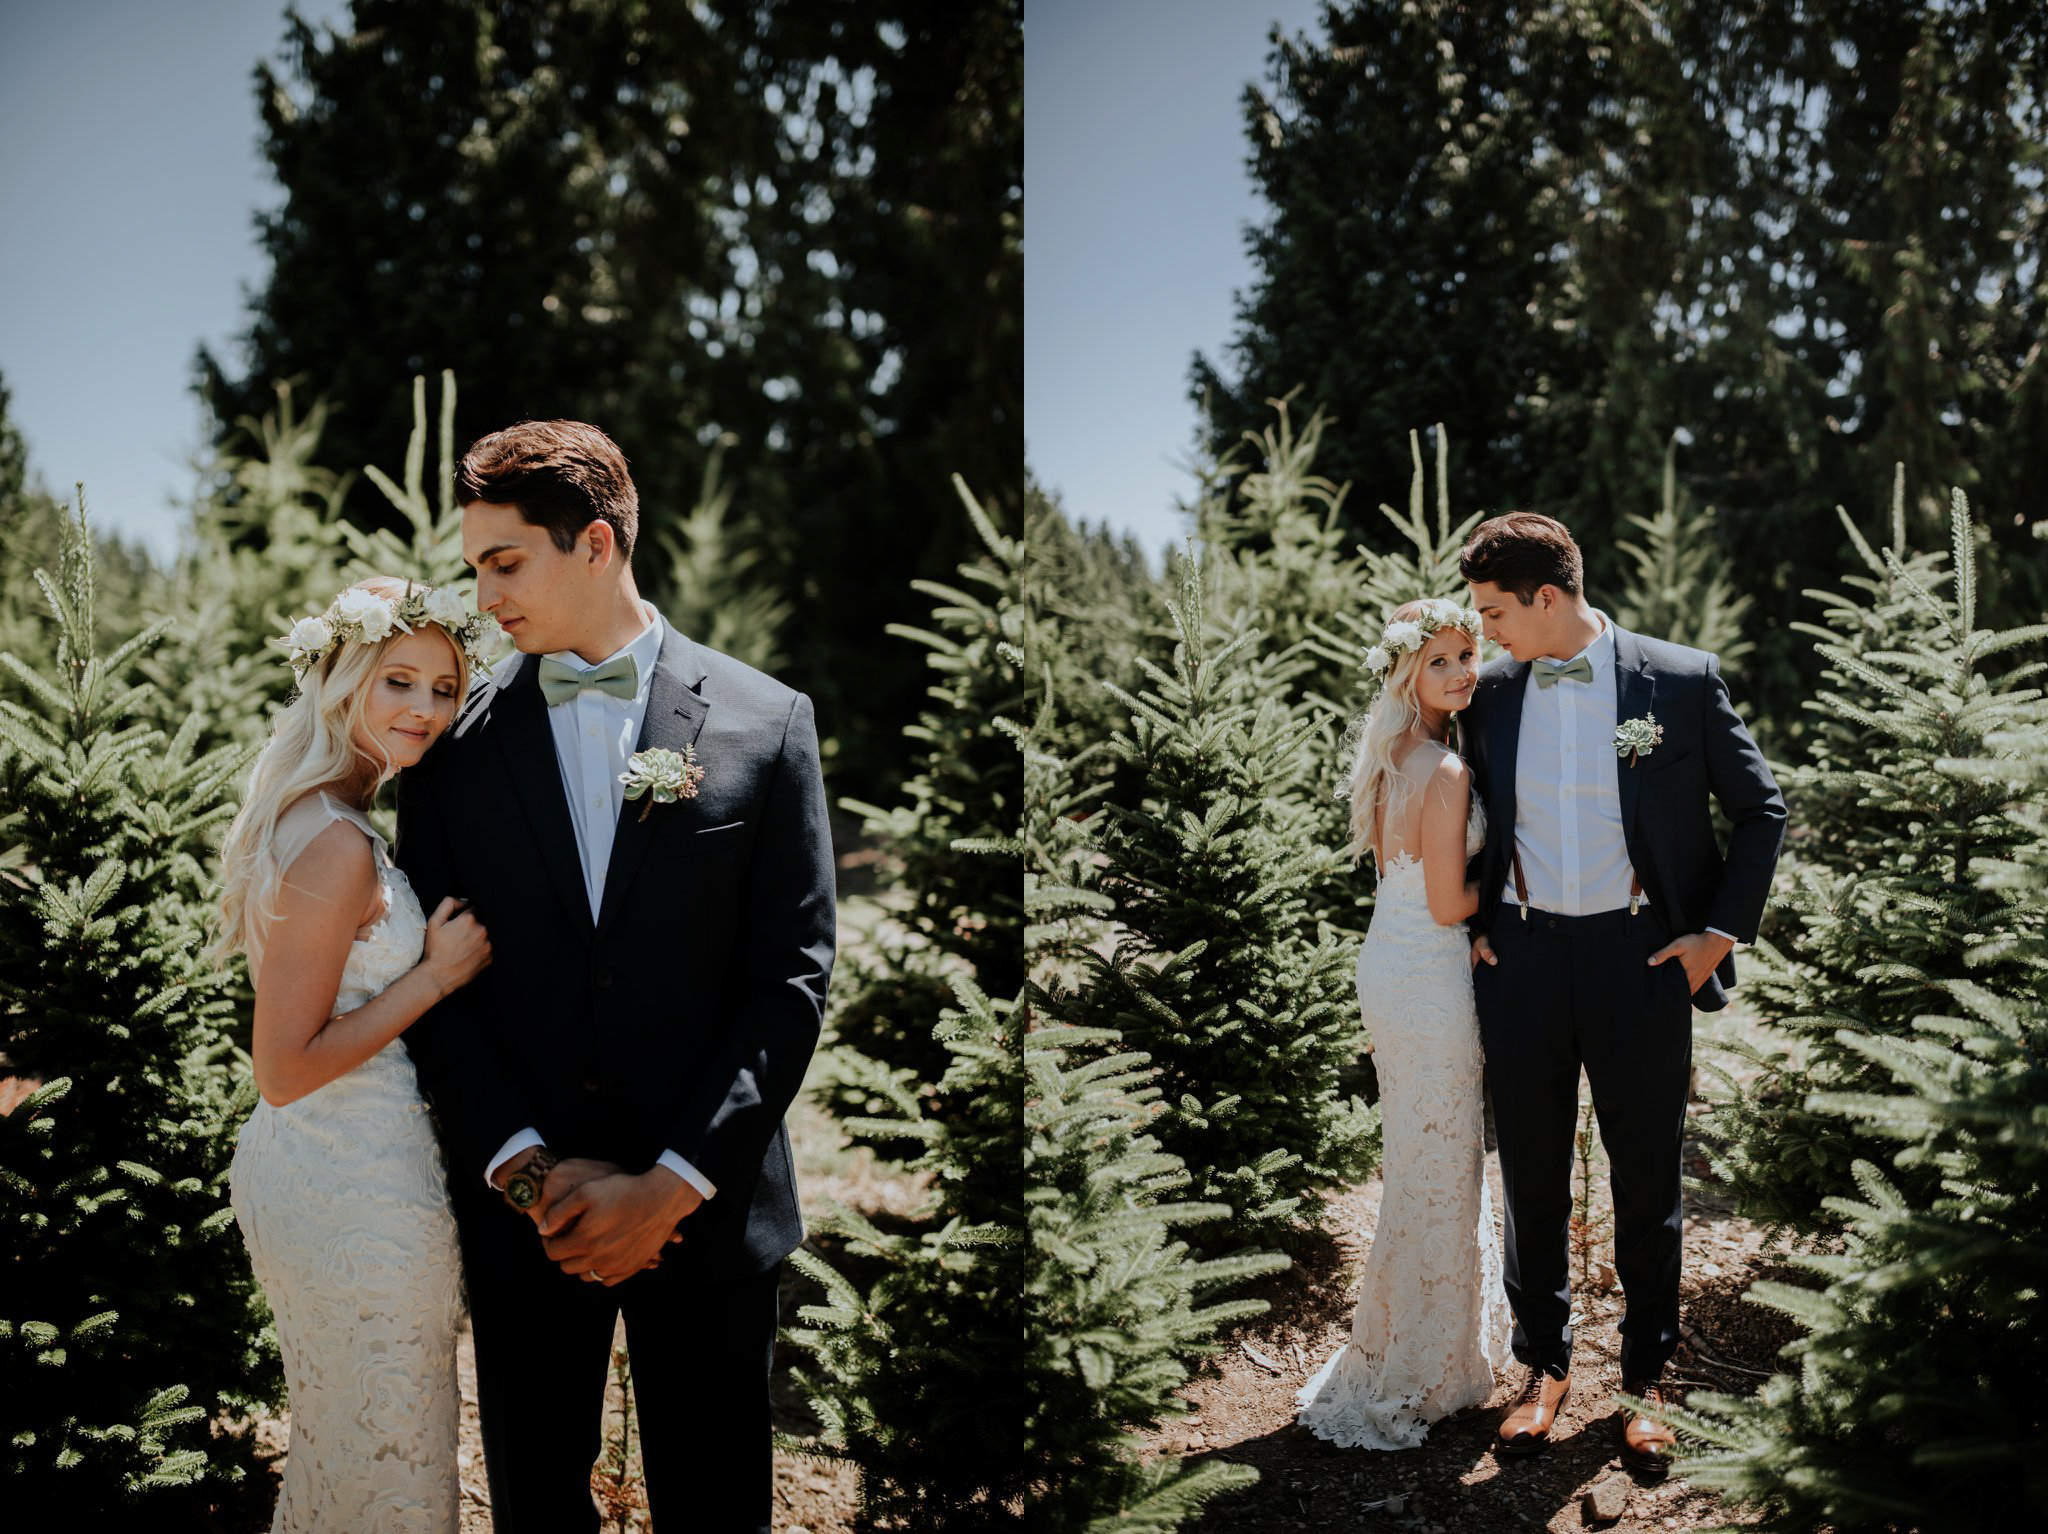 trinity-tree-farm-issaquah-washington-wedding-seattle-lifestyle-photographer-caitlyn-nikula-photography-36.jpg